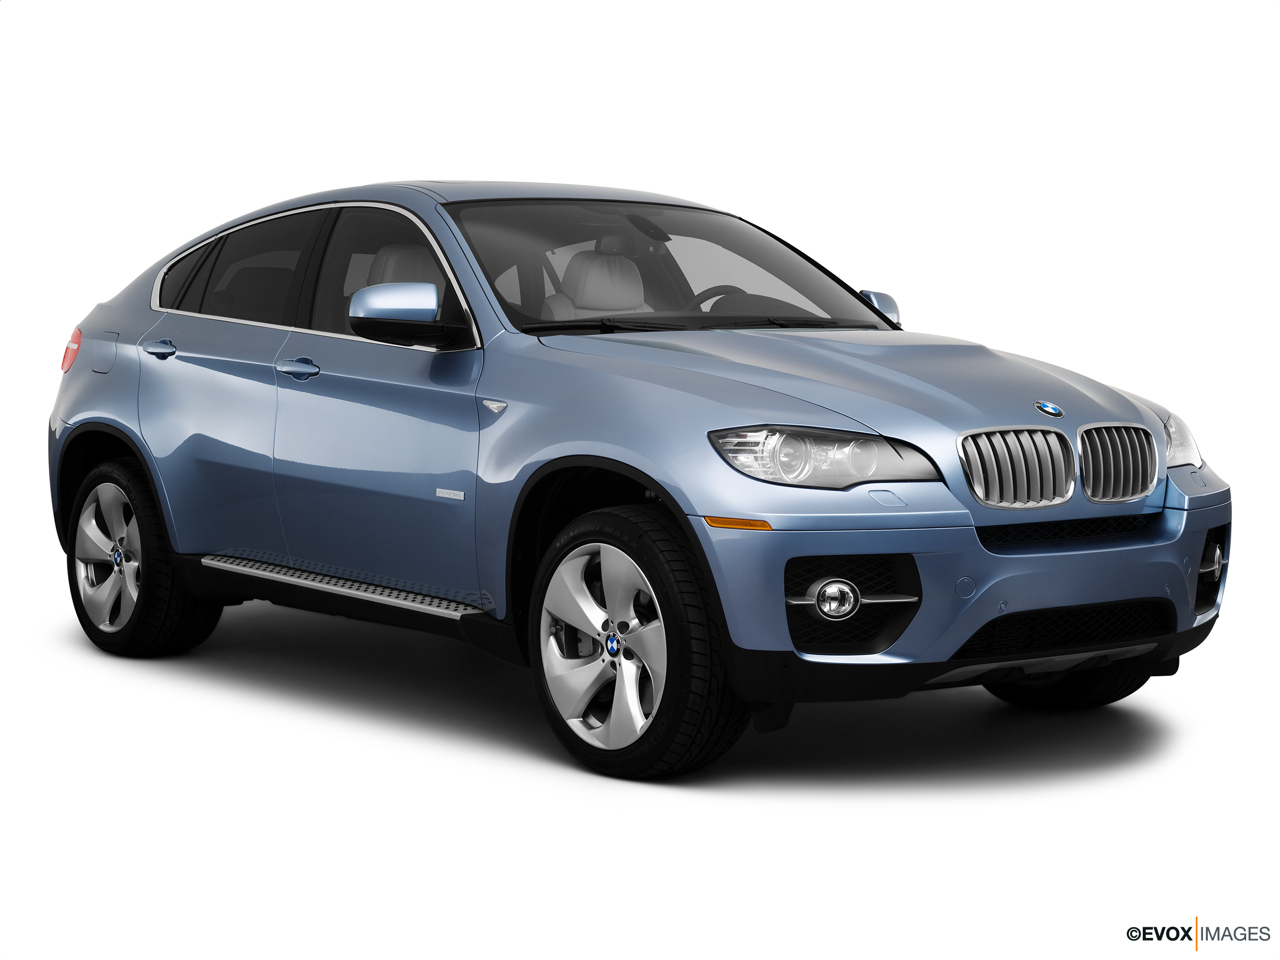 2010 BMW X6 Hybrid Base 158 - no description